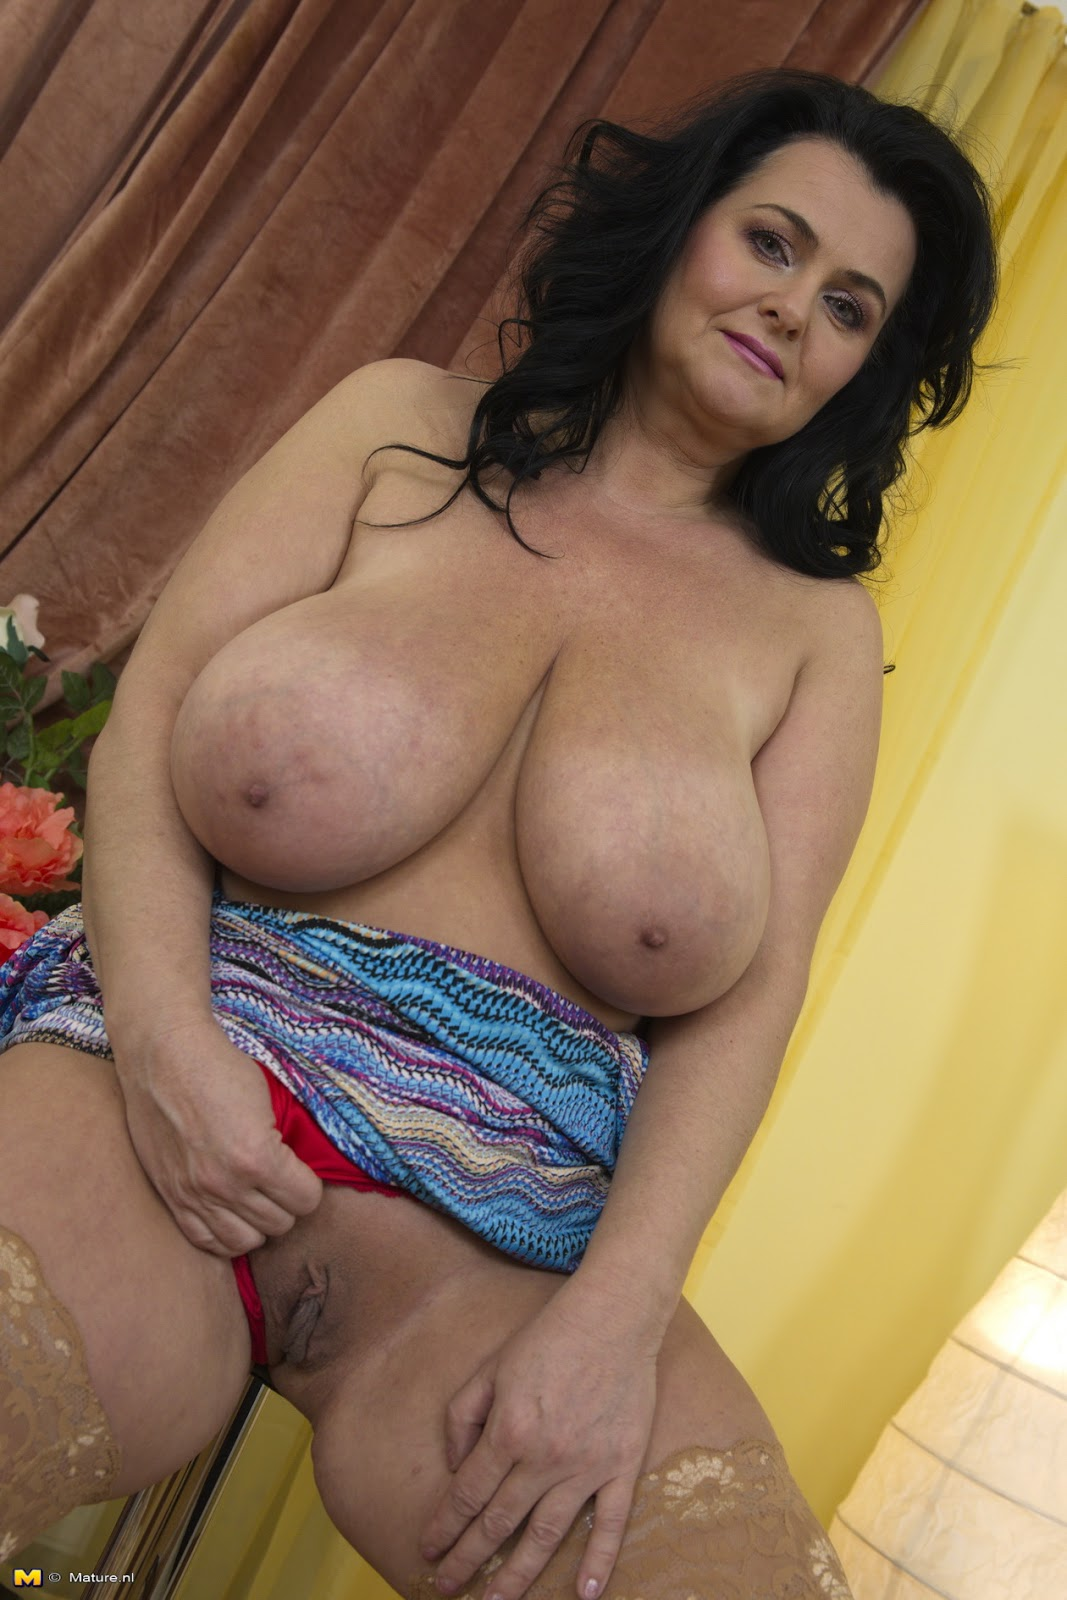 Huge Breasted Older Women